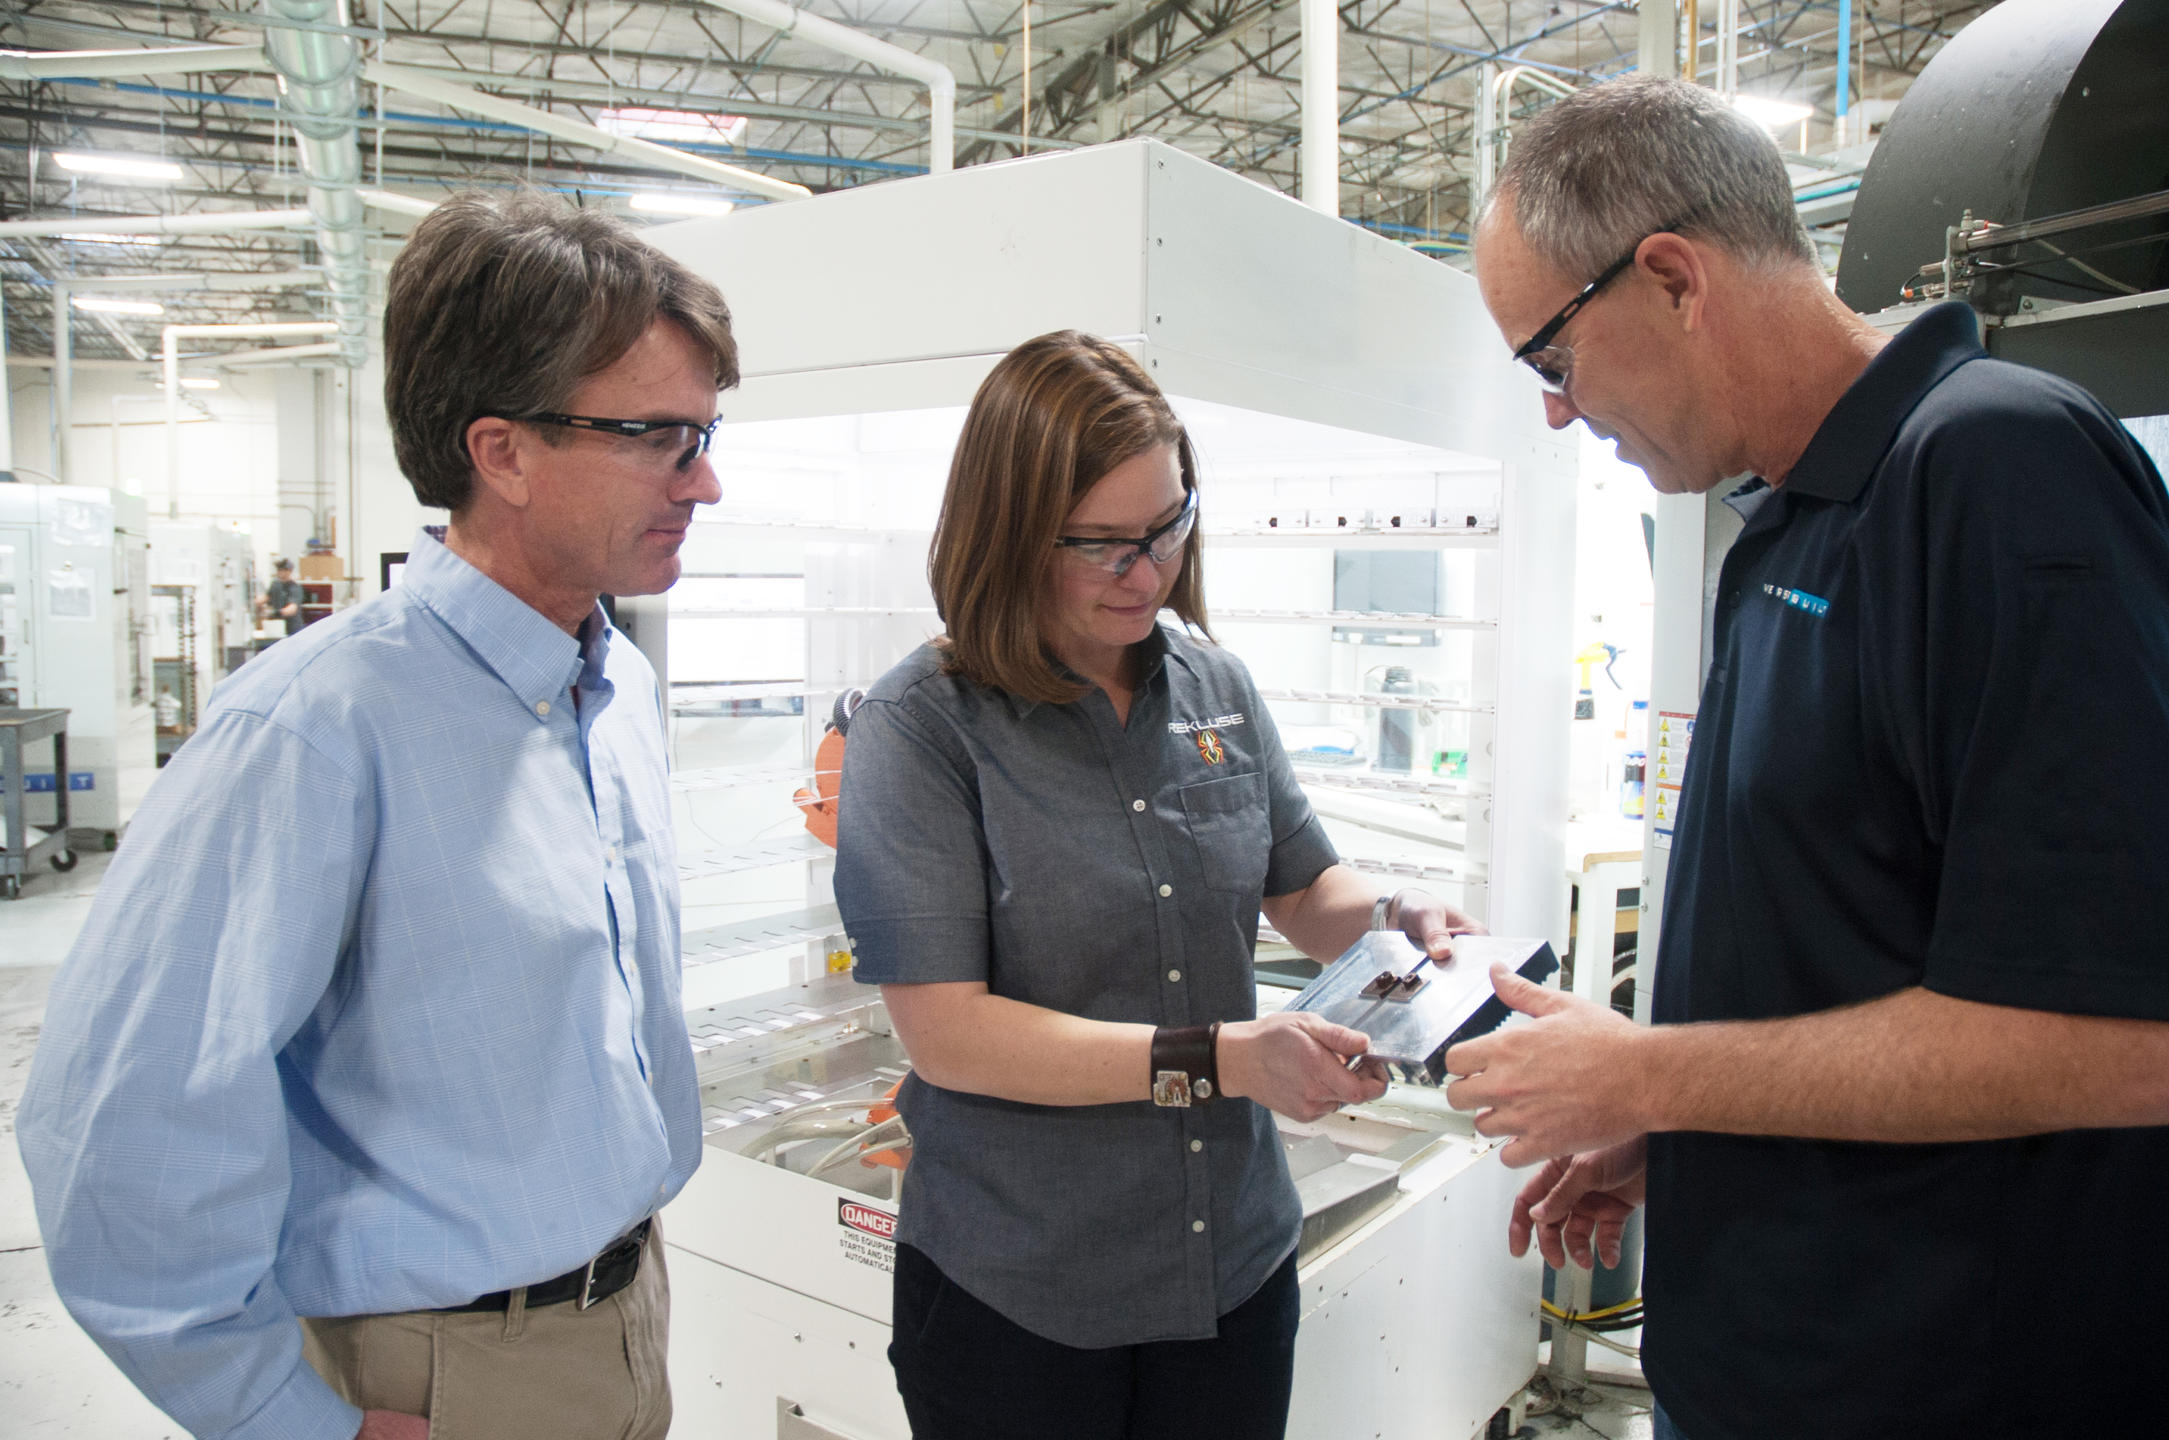 Three people on a manufacturing floor discussing a new product